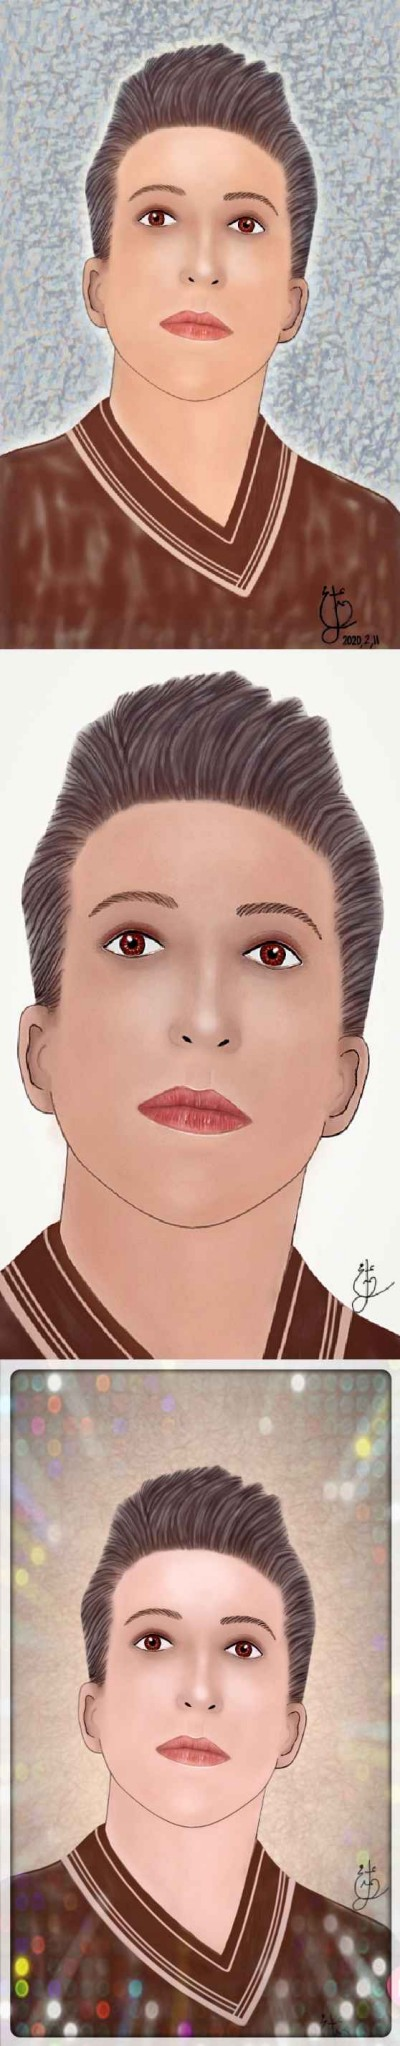 The first face work of my own face   _mamol_slh_   Digital Drawing   PENUP